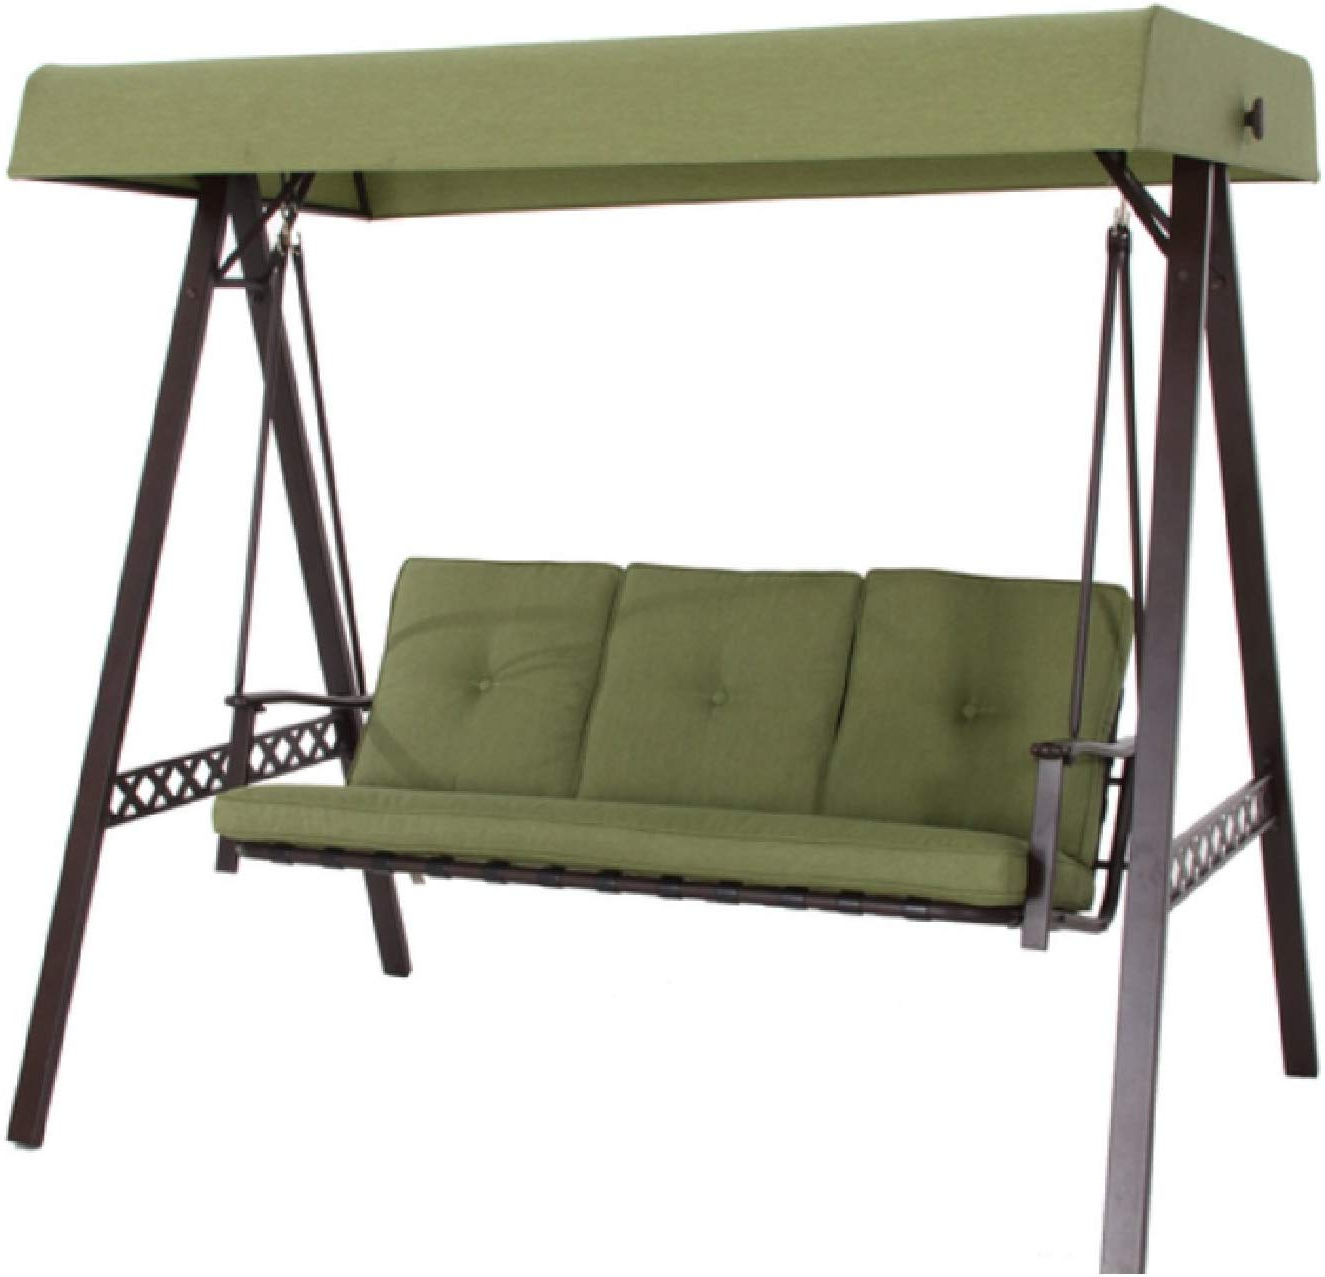 Well Known Canopy Patio Porch Swings With Pillows And Cup Holders Inside Amazon : New Outdoor 3 Triple Seater Swing Glider Canopy (Gallery 3 of 30)